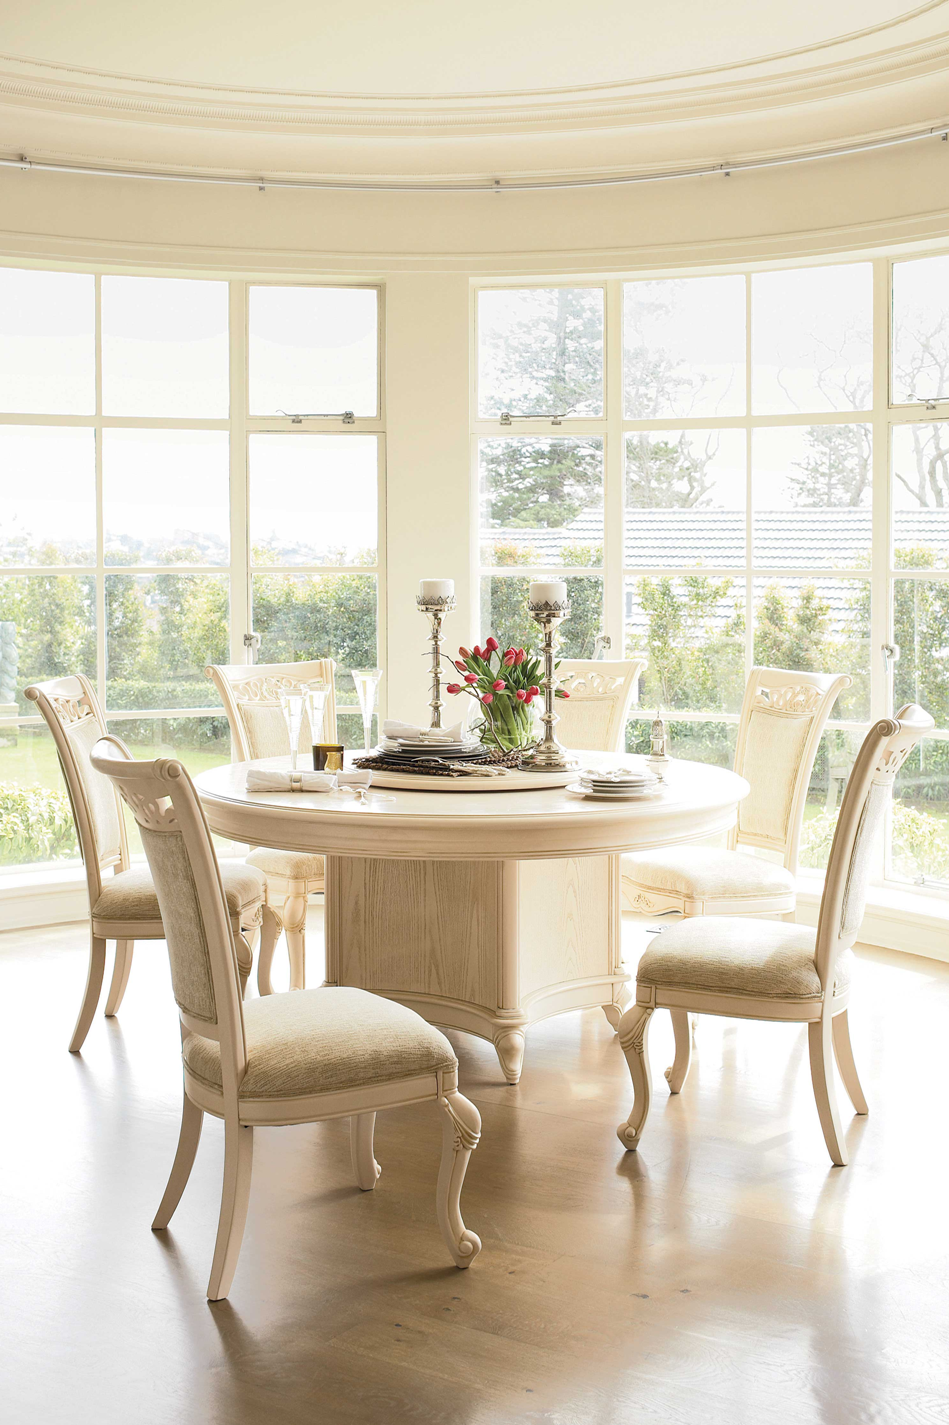 Chateau 7 Piece Round Dining Suite By Sorensen Furniture   Harvey Norman New  Zealand